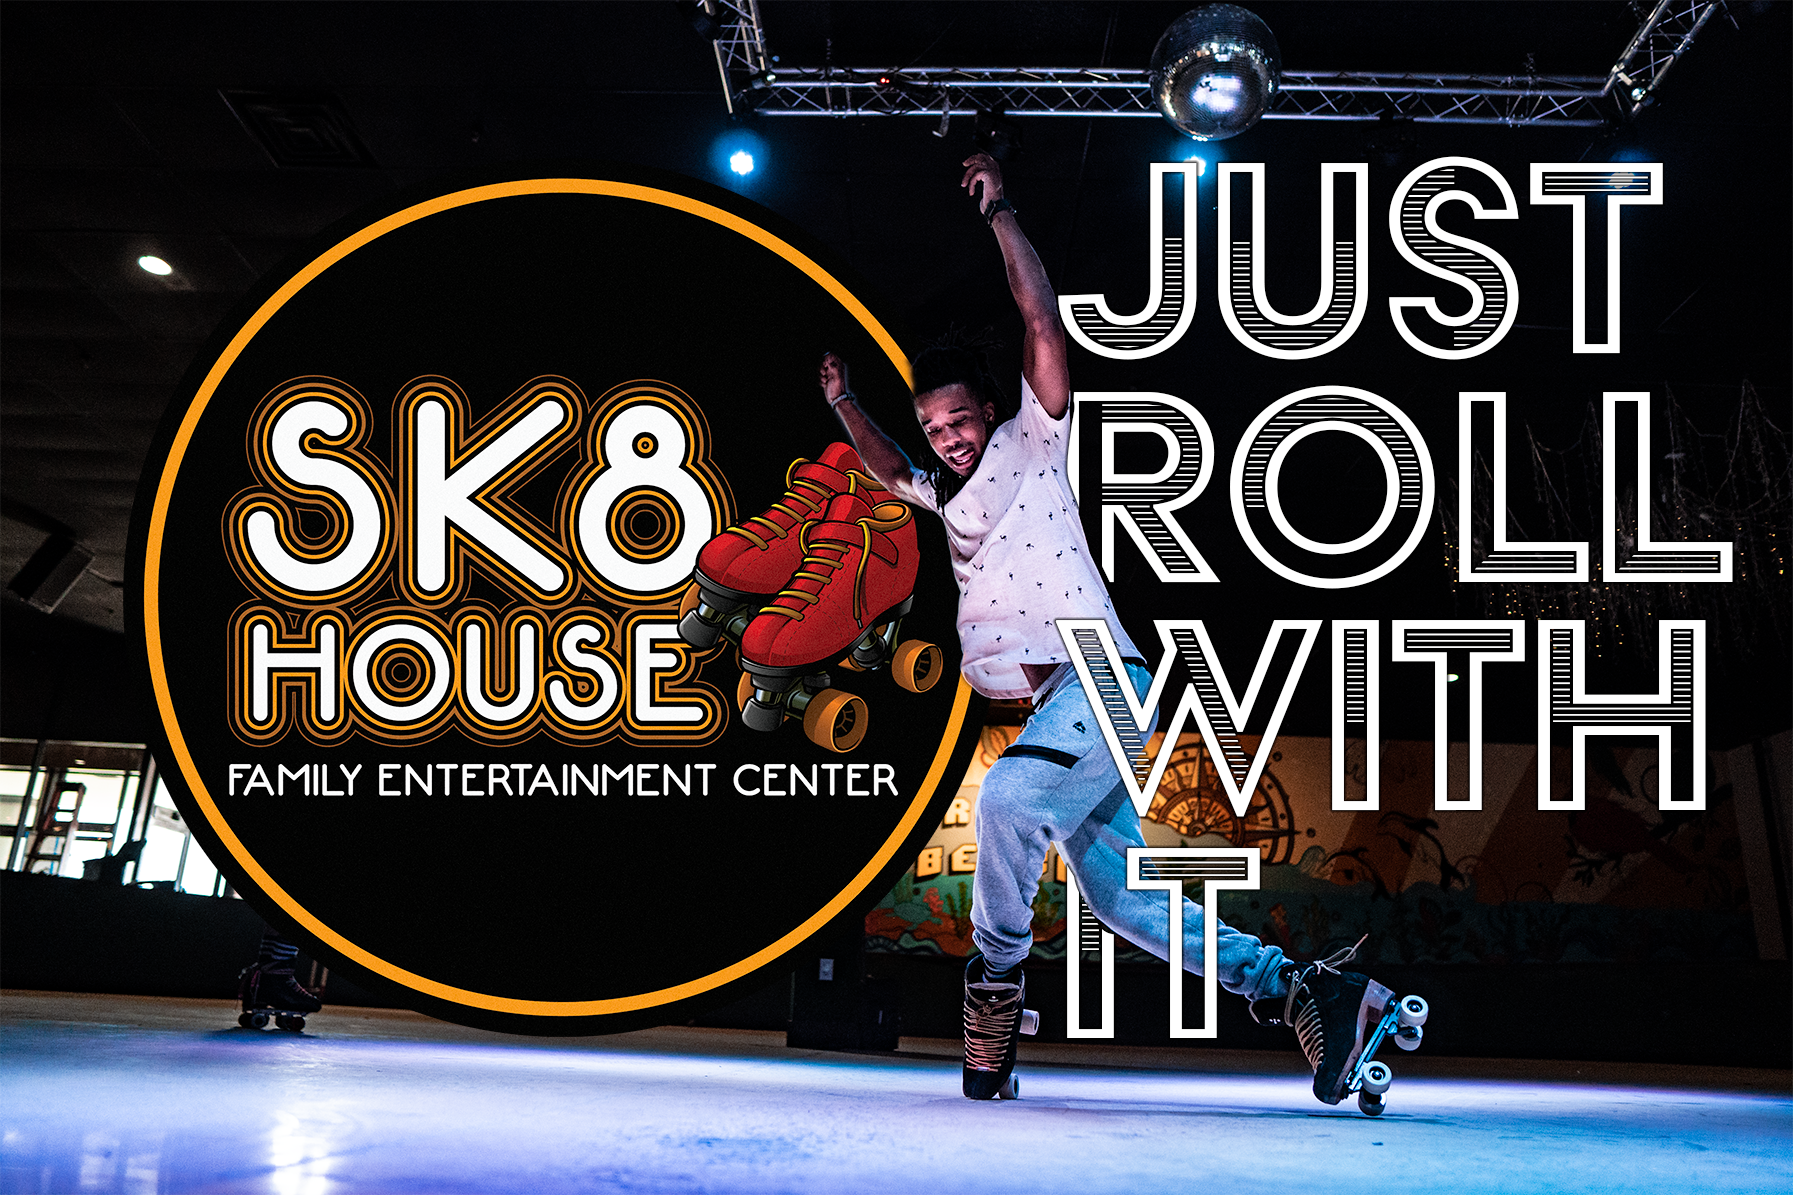 Roller Skating Virginia Beach & Event Spaces Hampton Roads